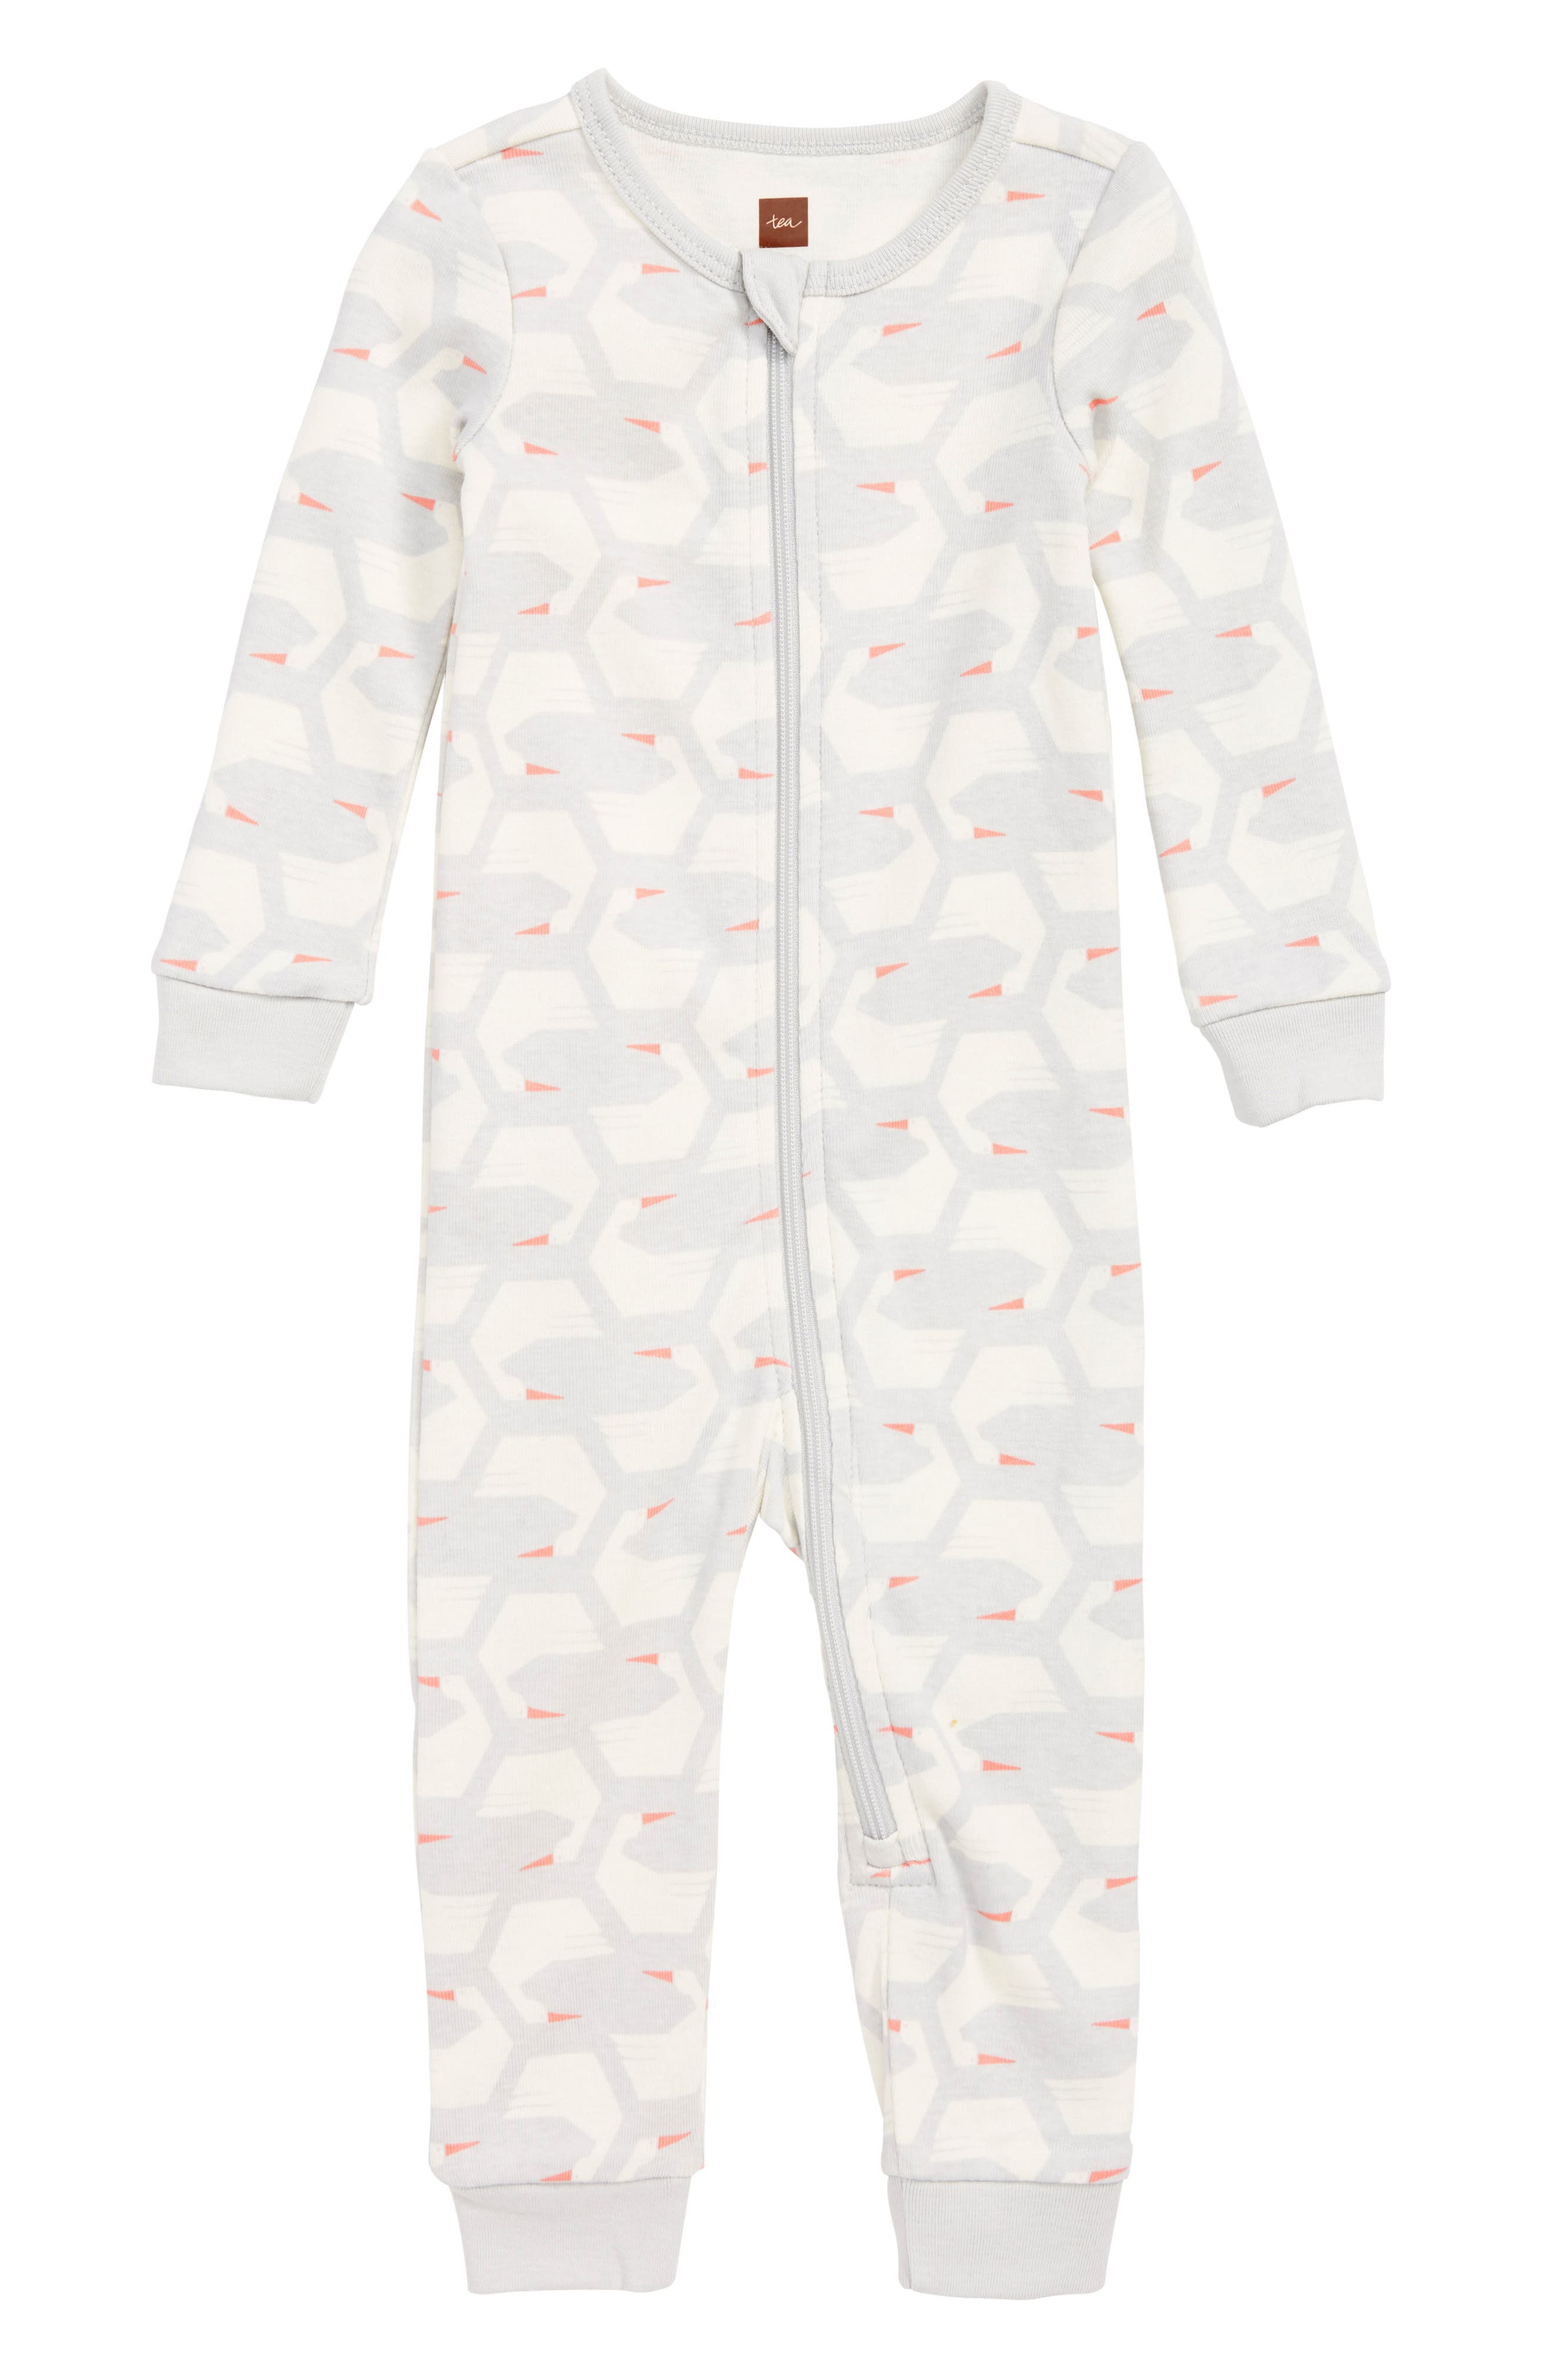 Fitted One-Piece Pajamas,                         Main,                         color, FLOCK OF SWANS